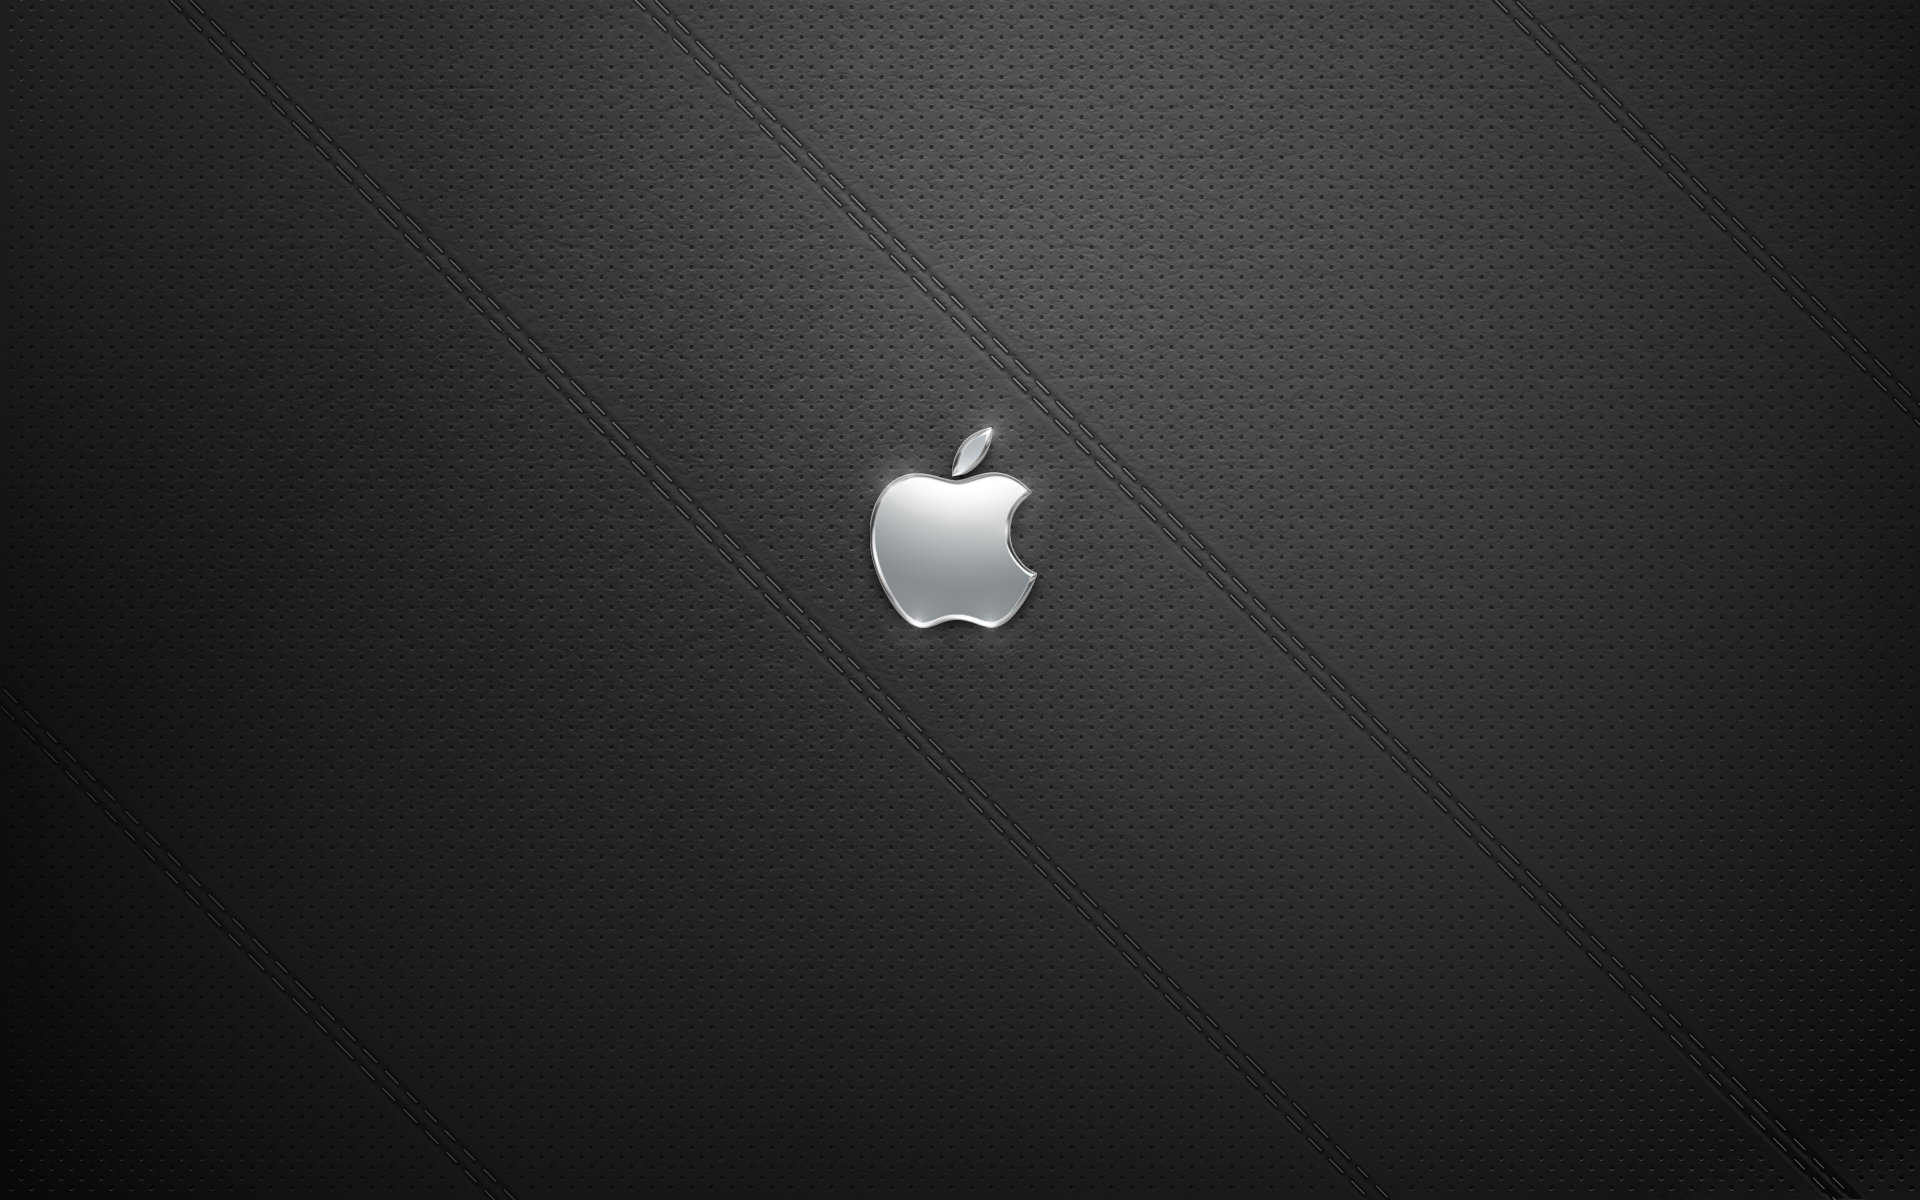 Leather Apple Logo Wallpaper